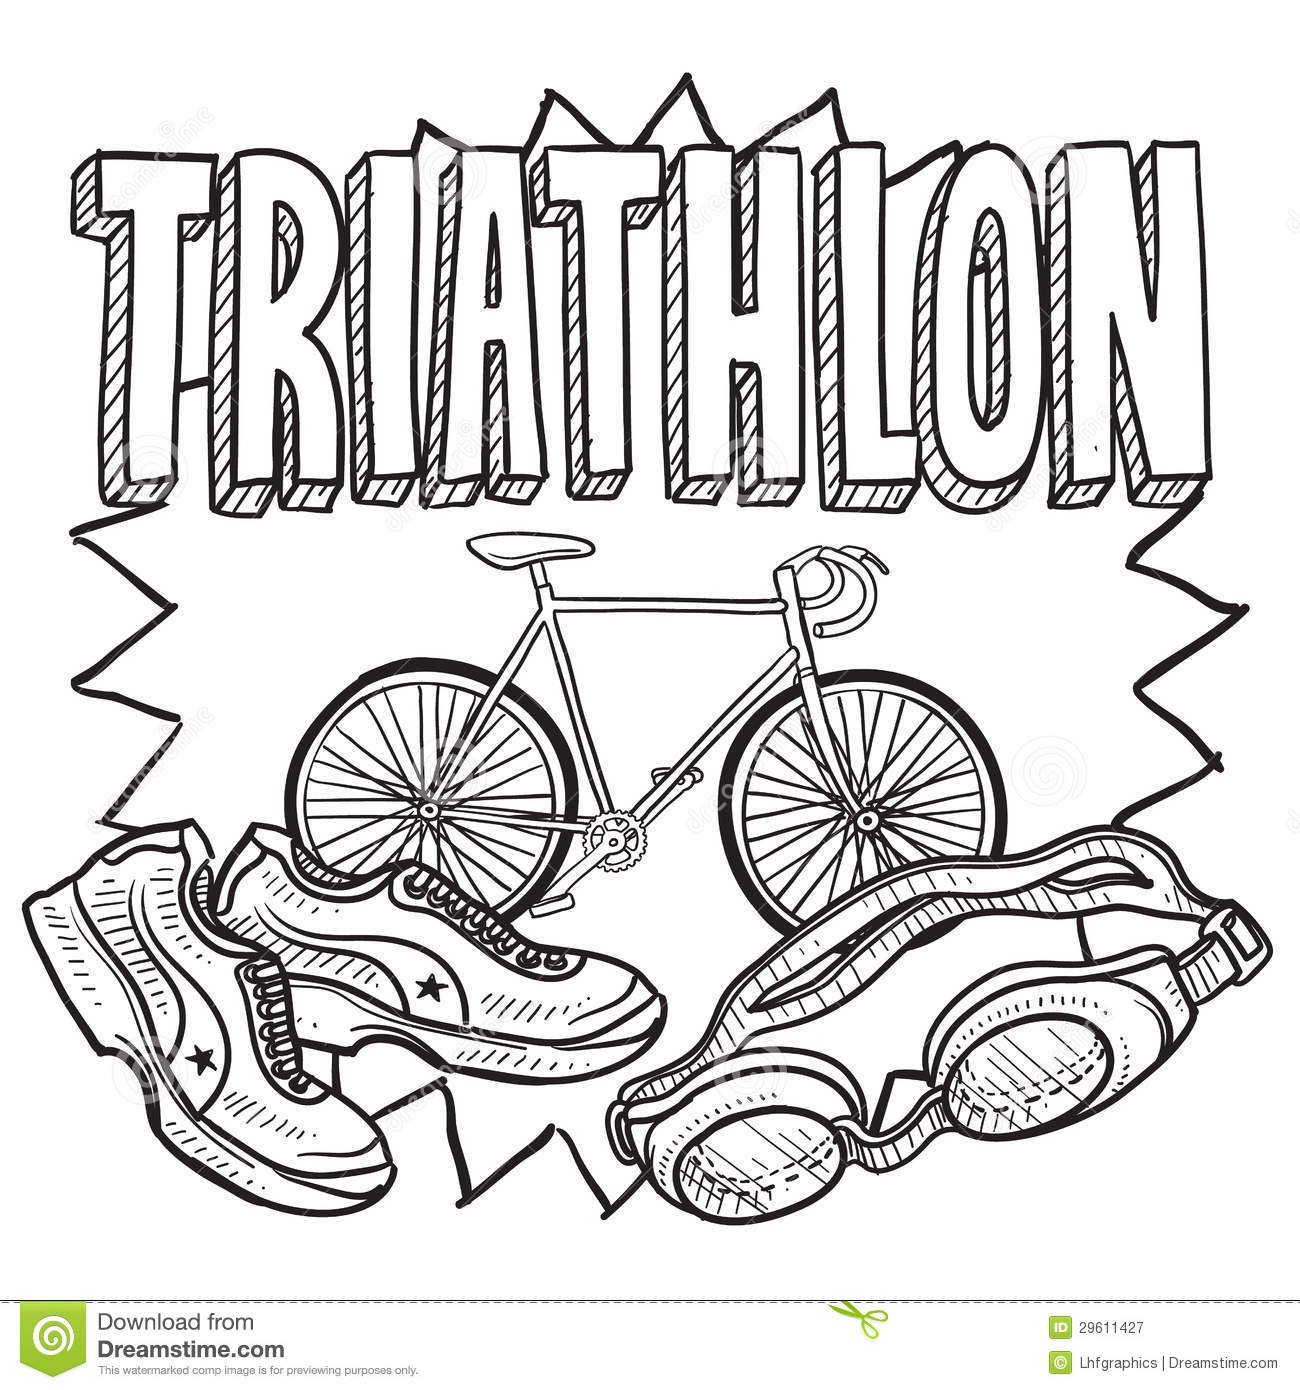 Triathlon sketch royalty free stock photography image for Sketch online free